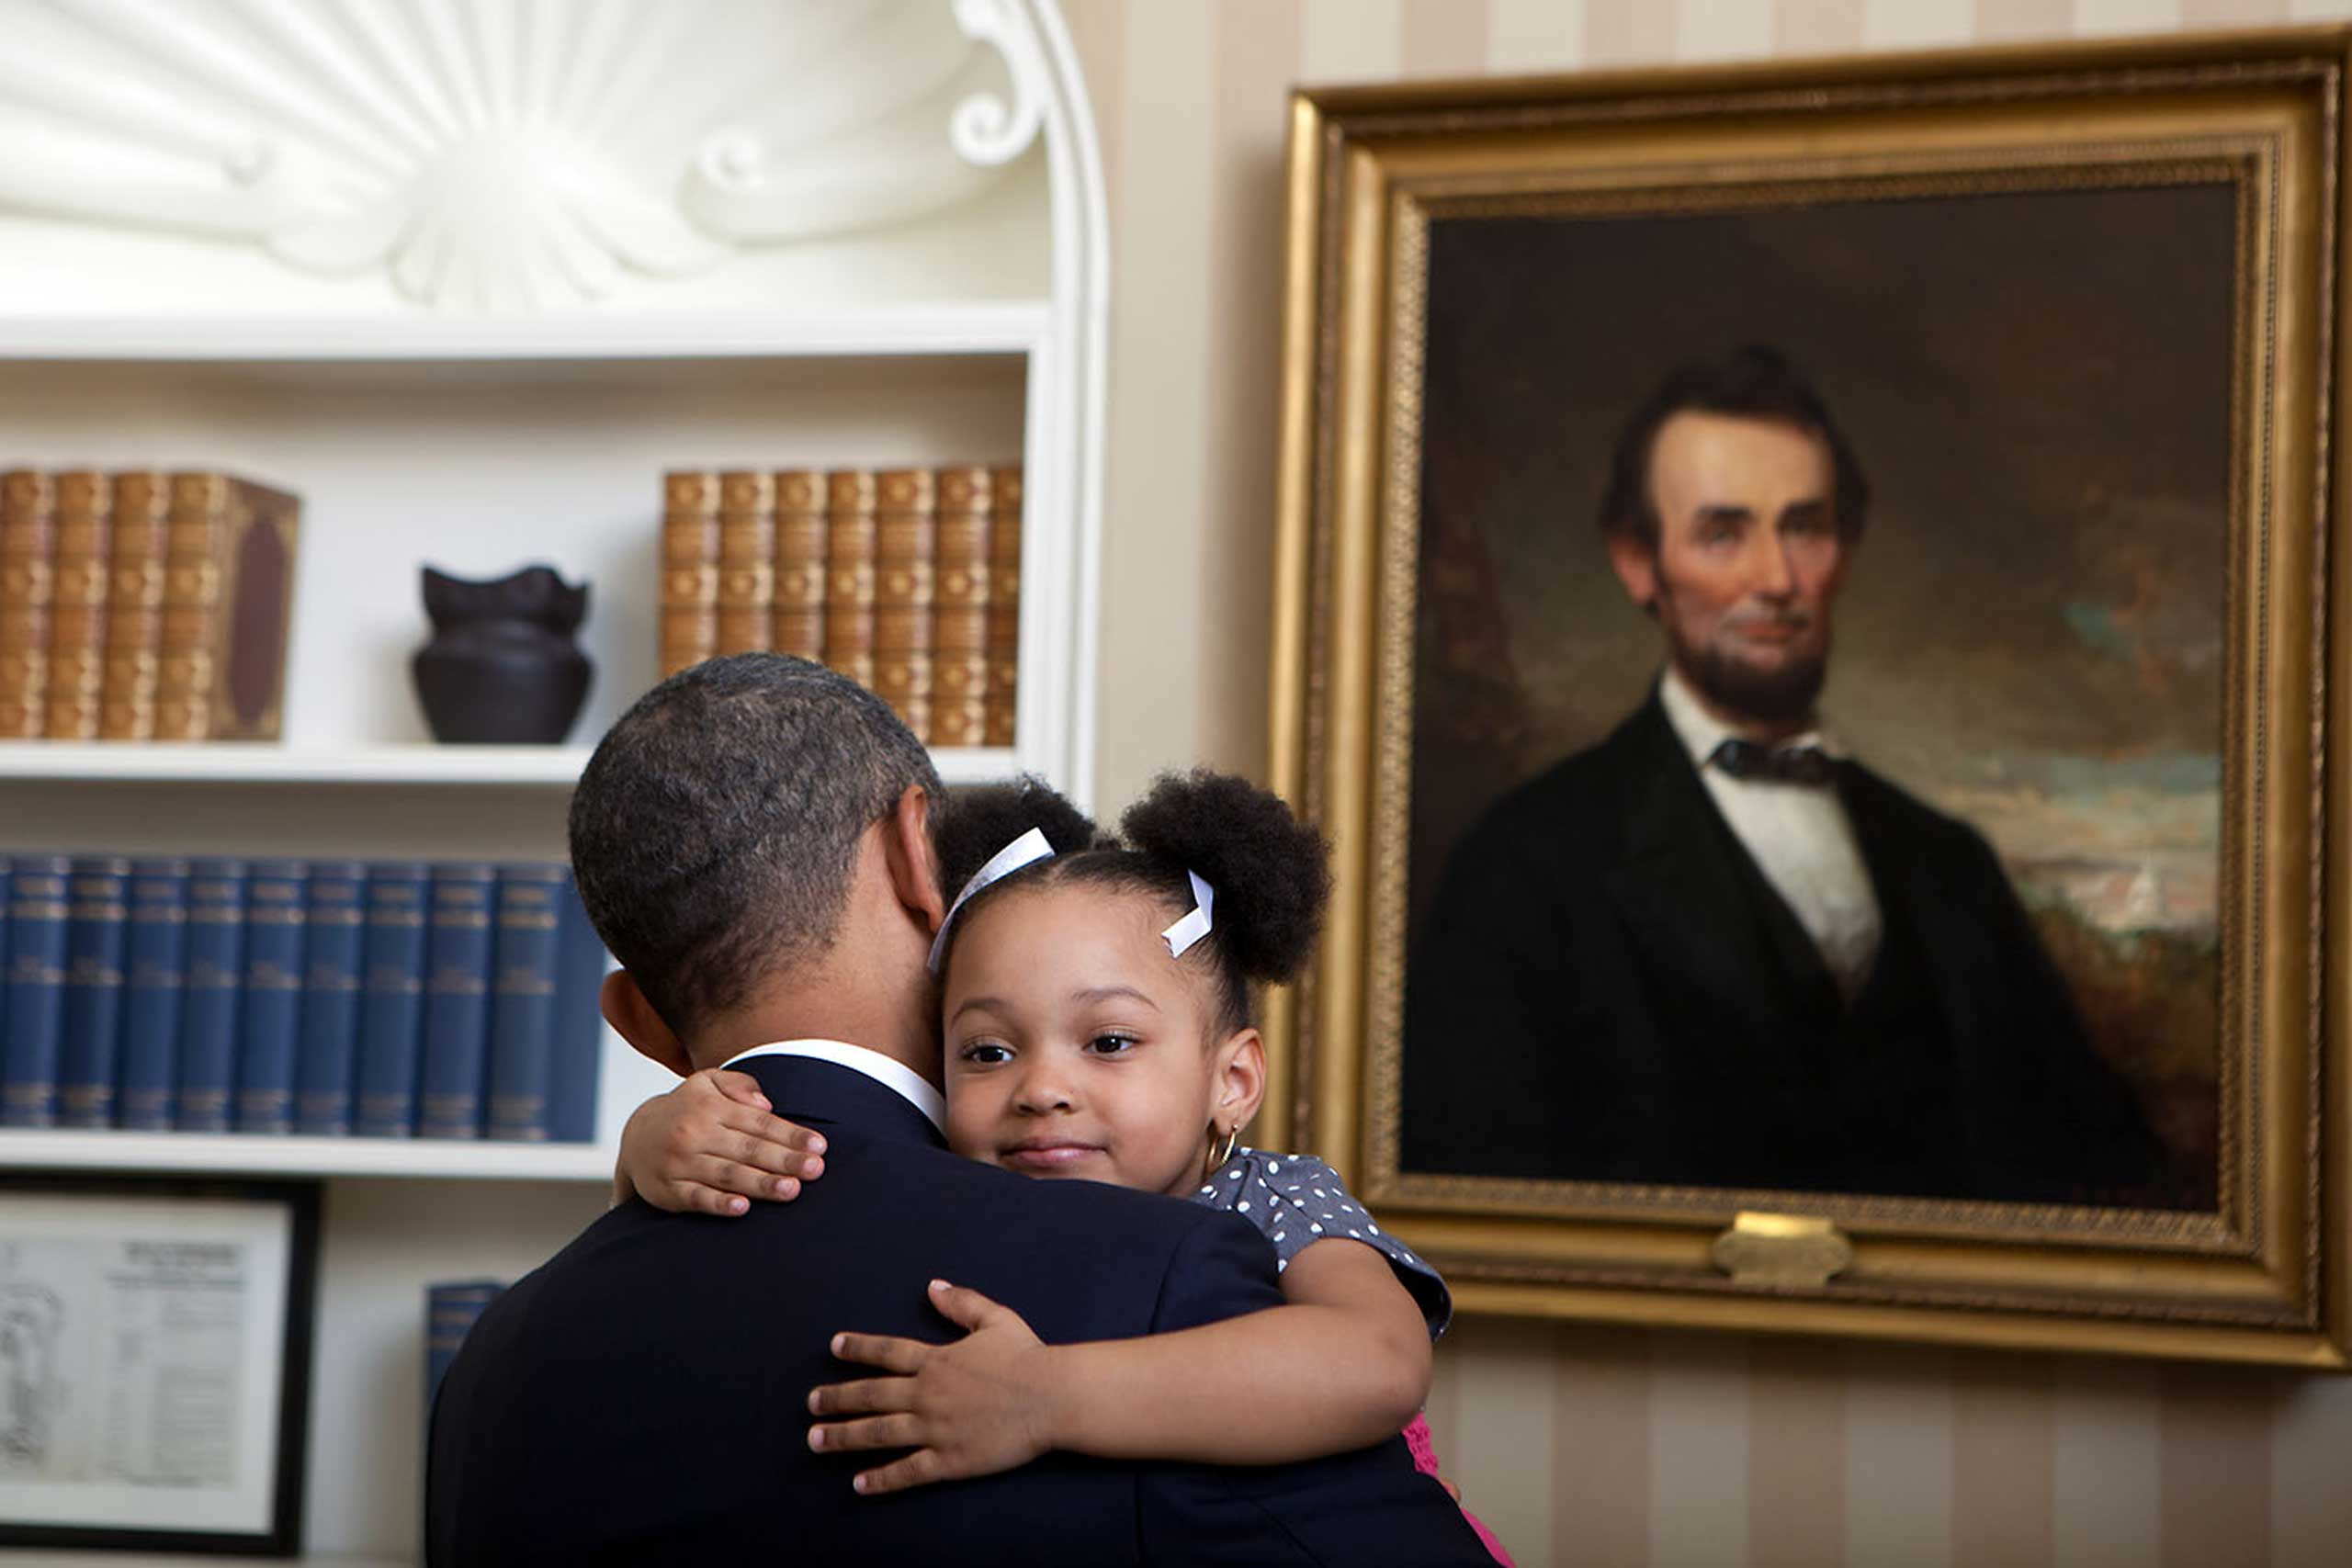 President Obama greets the daughter of national security staffer during a departure photo in the Oval Office, Feb. 1, 2012.